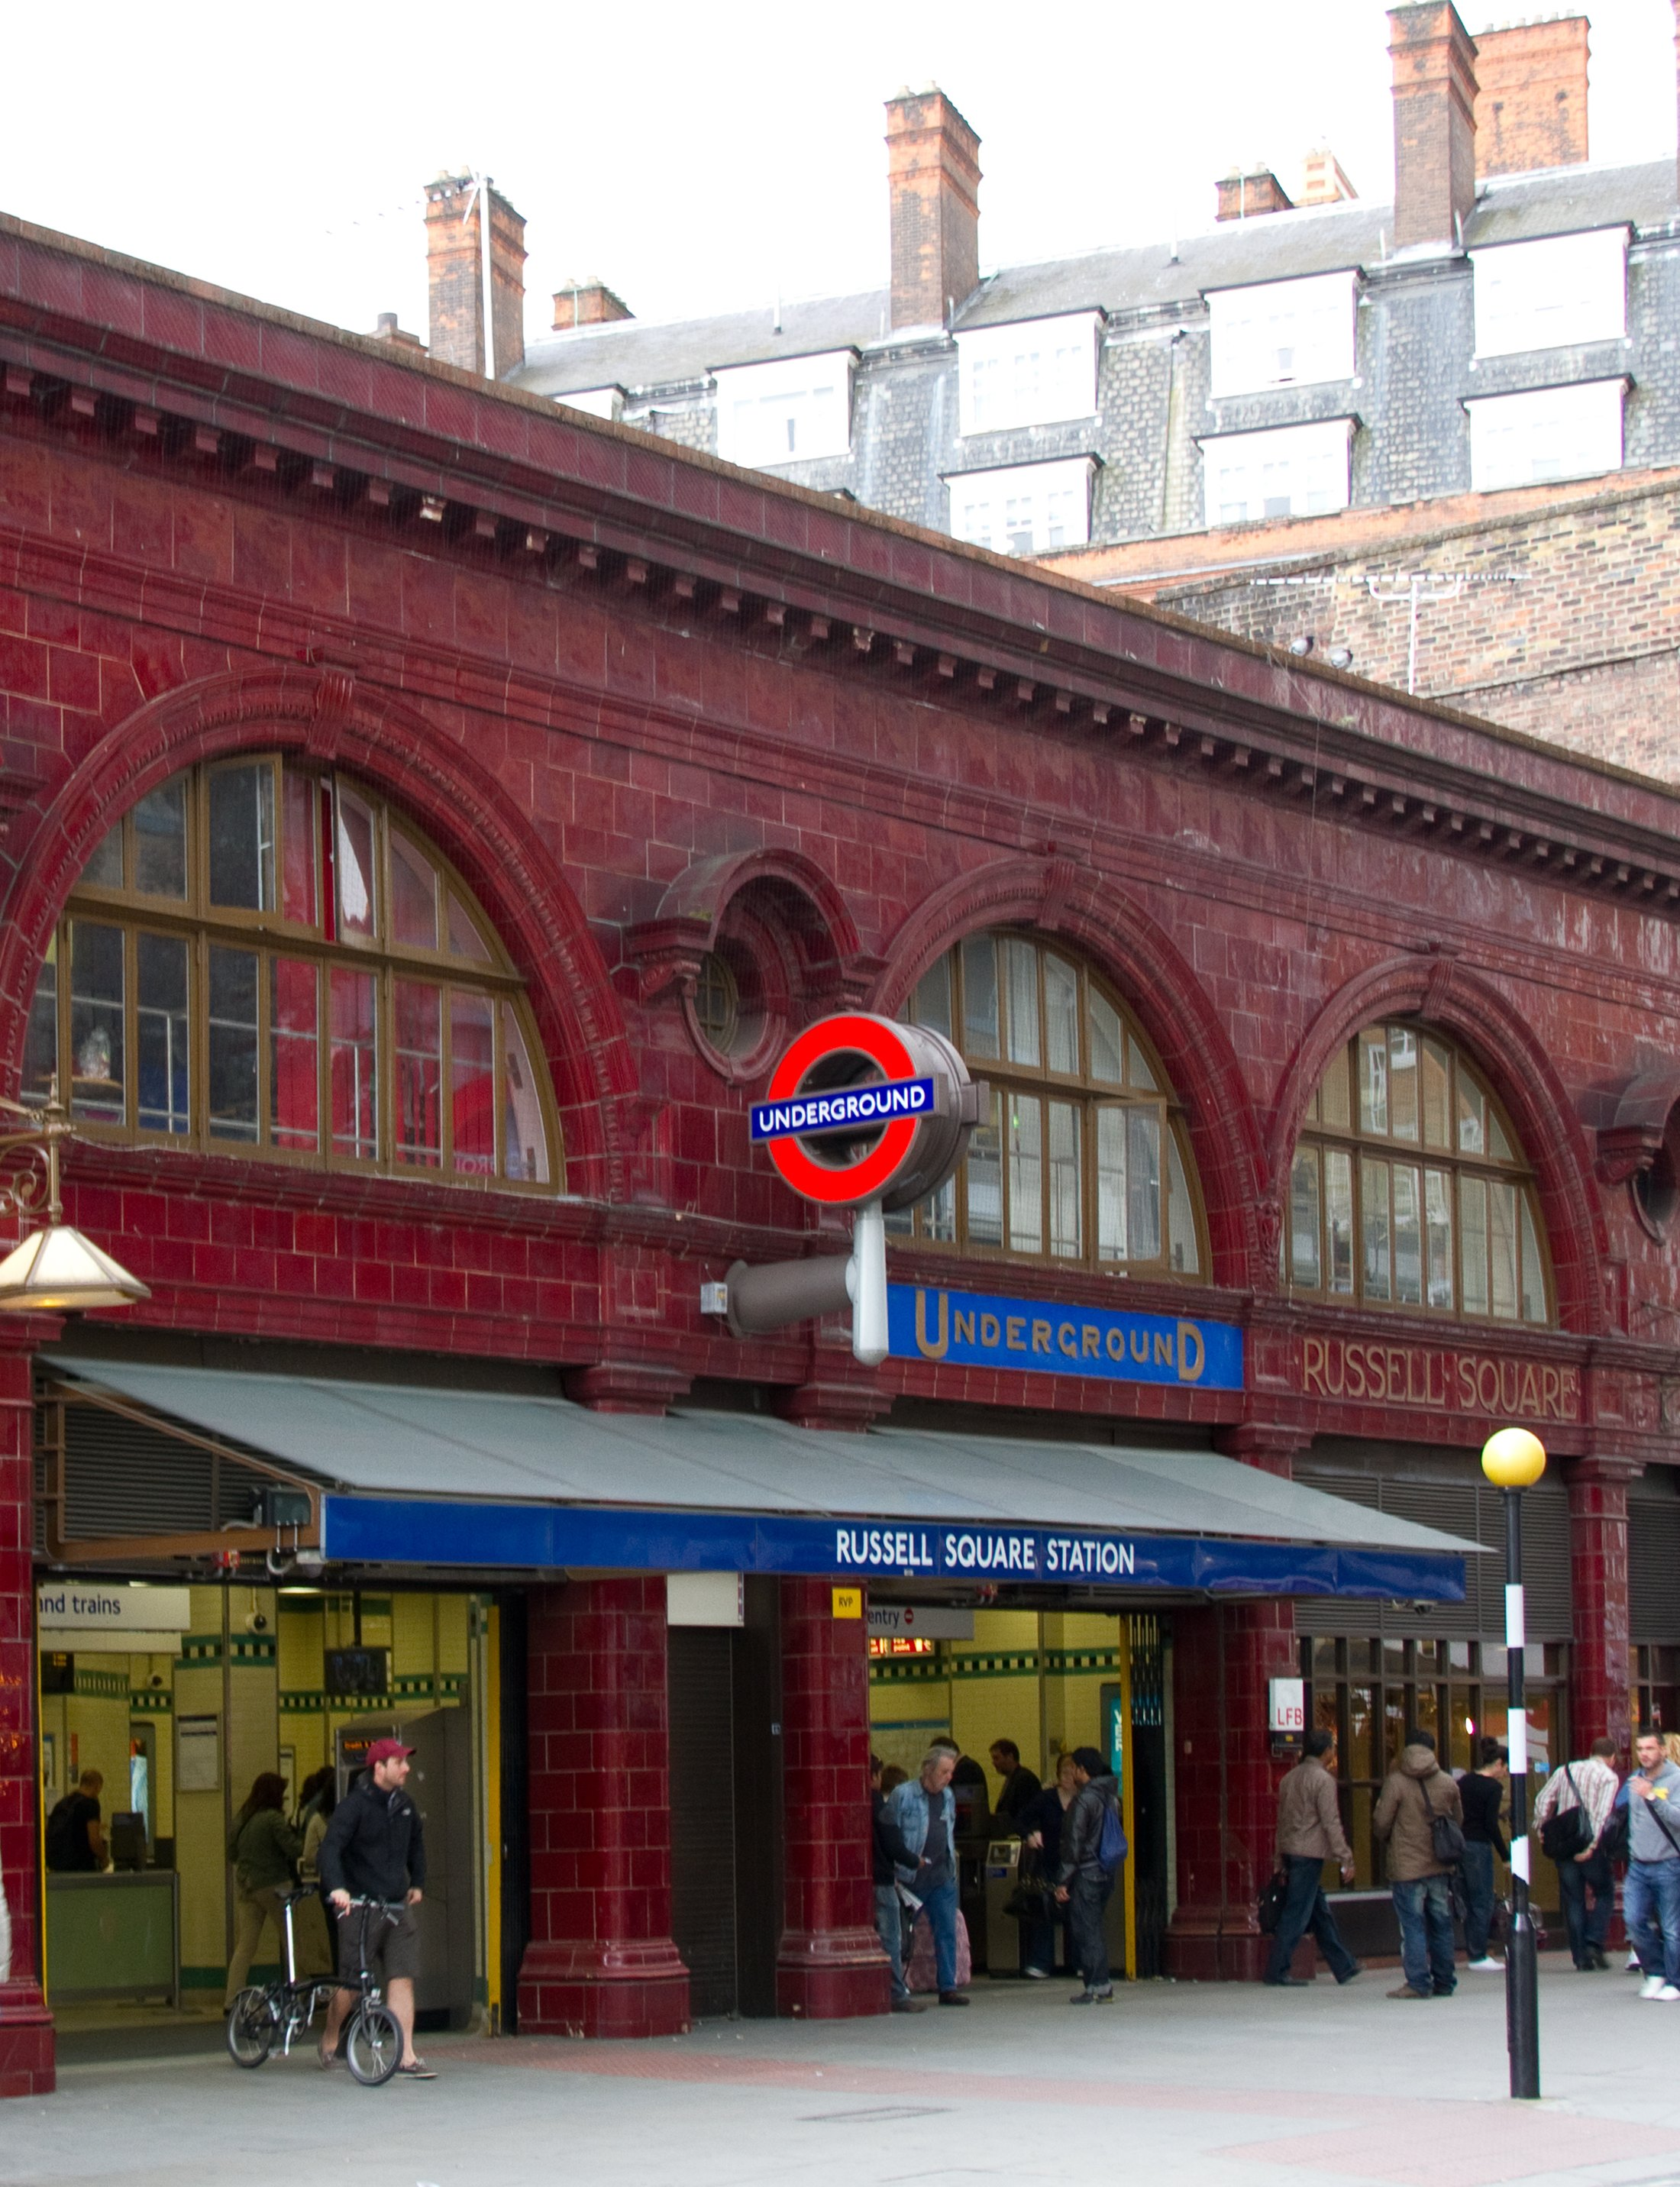 Russell Square Underground The 20 Worst Tube Stations In London